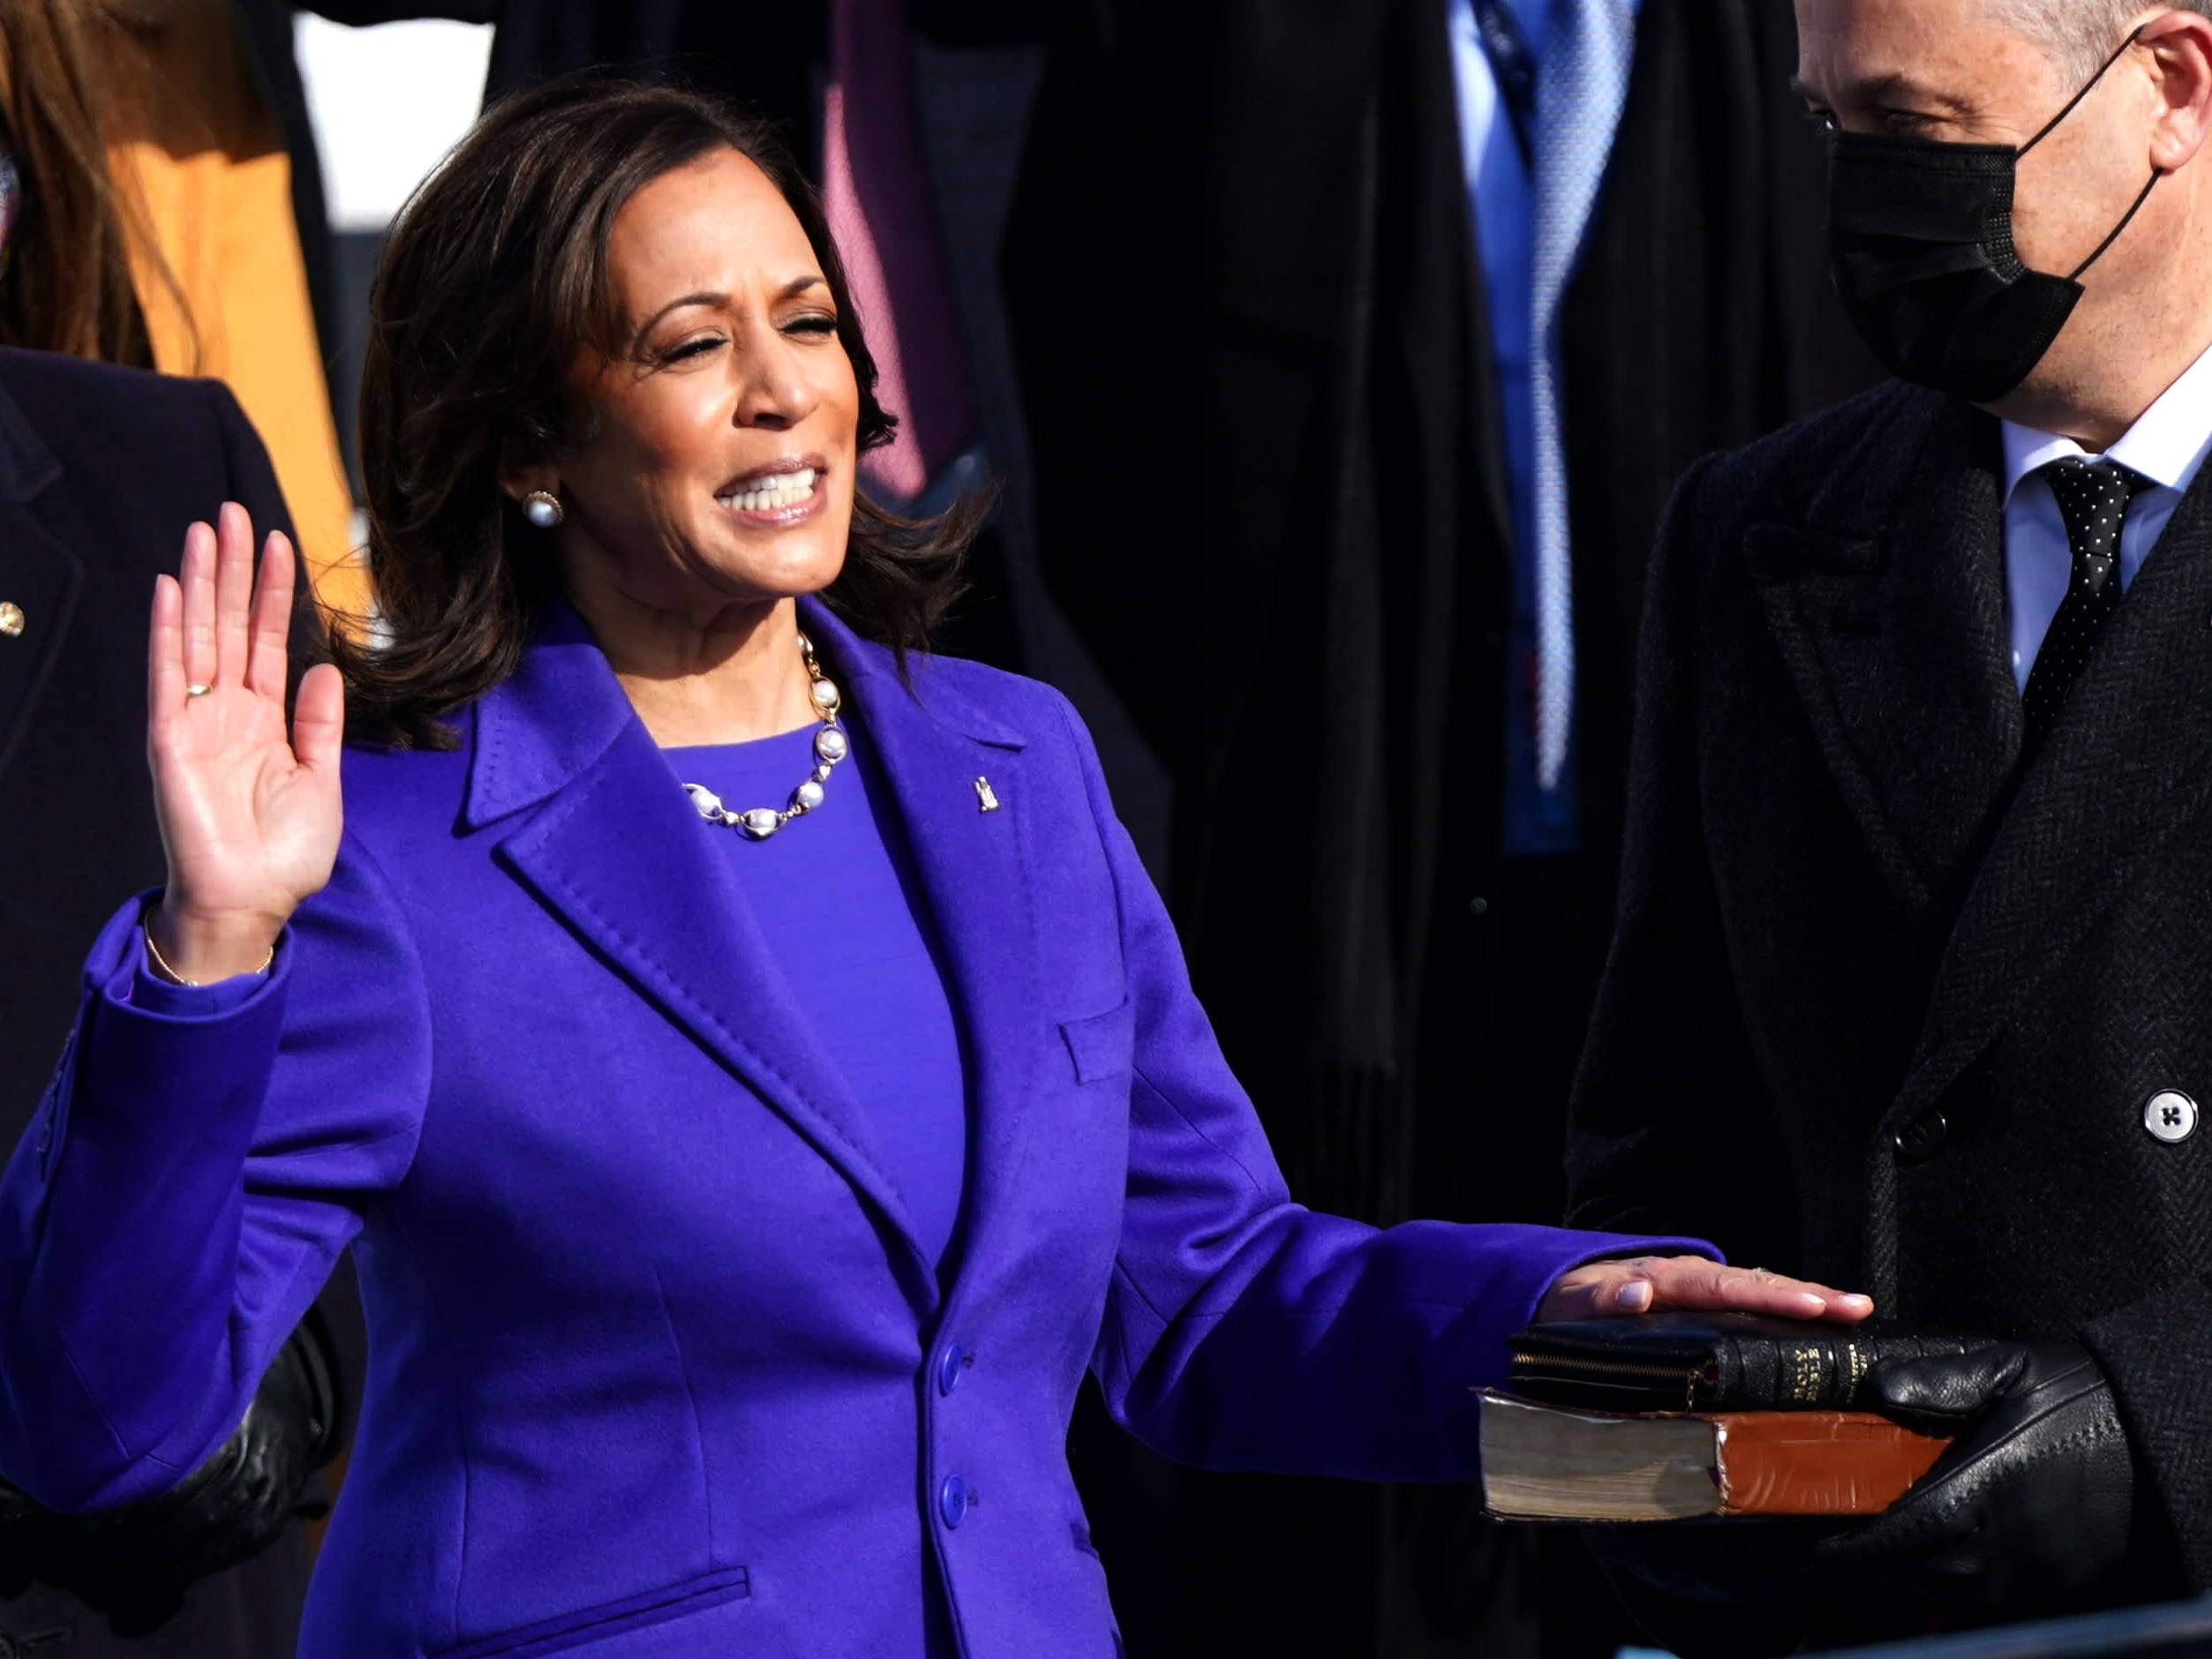 Kamala Harris is the first woman in history to be sworn in as Vice-President of the USA wearing a purple coat